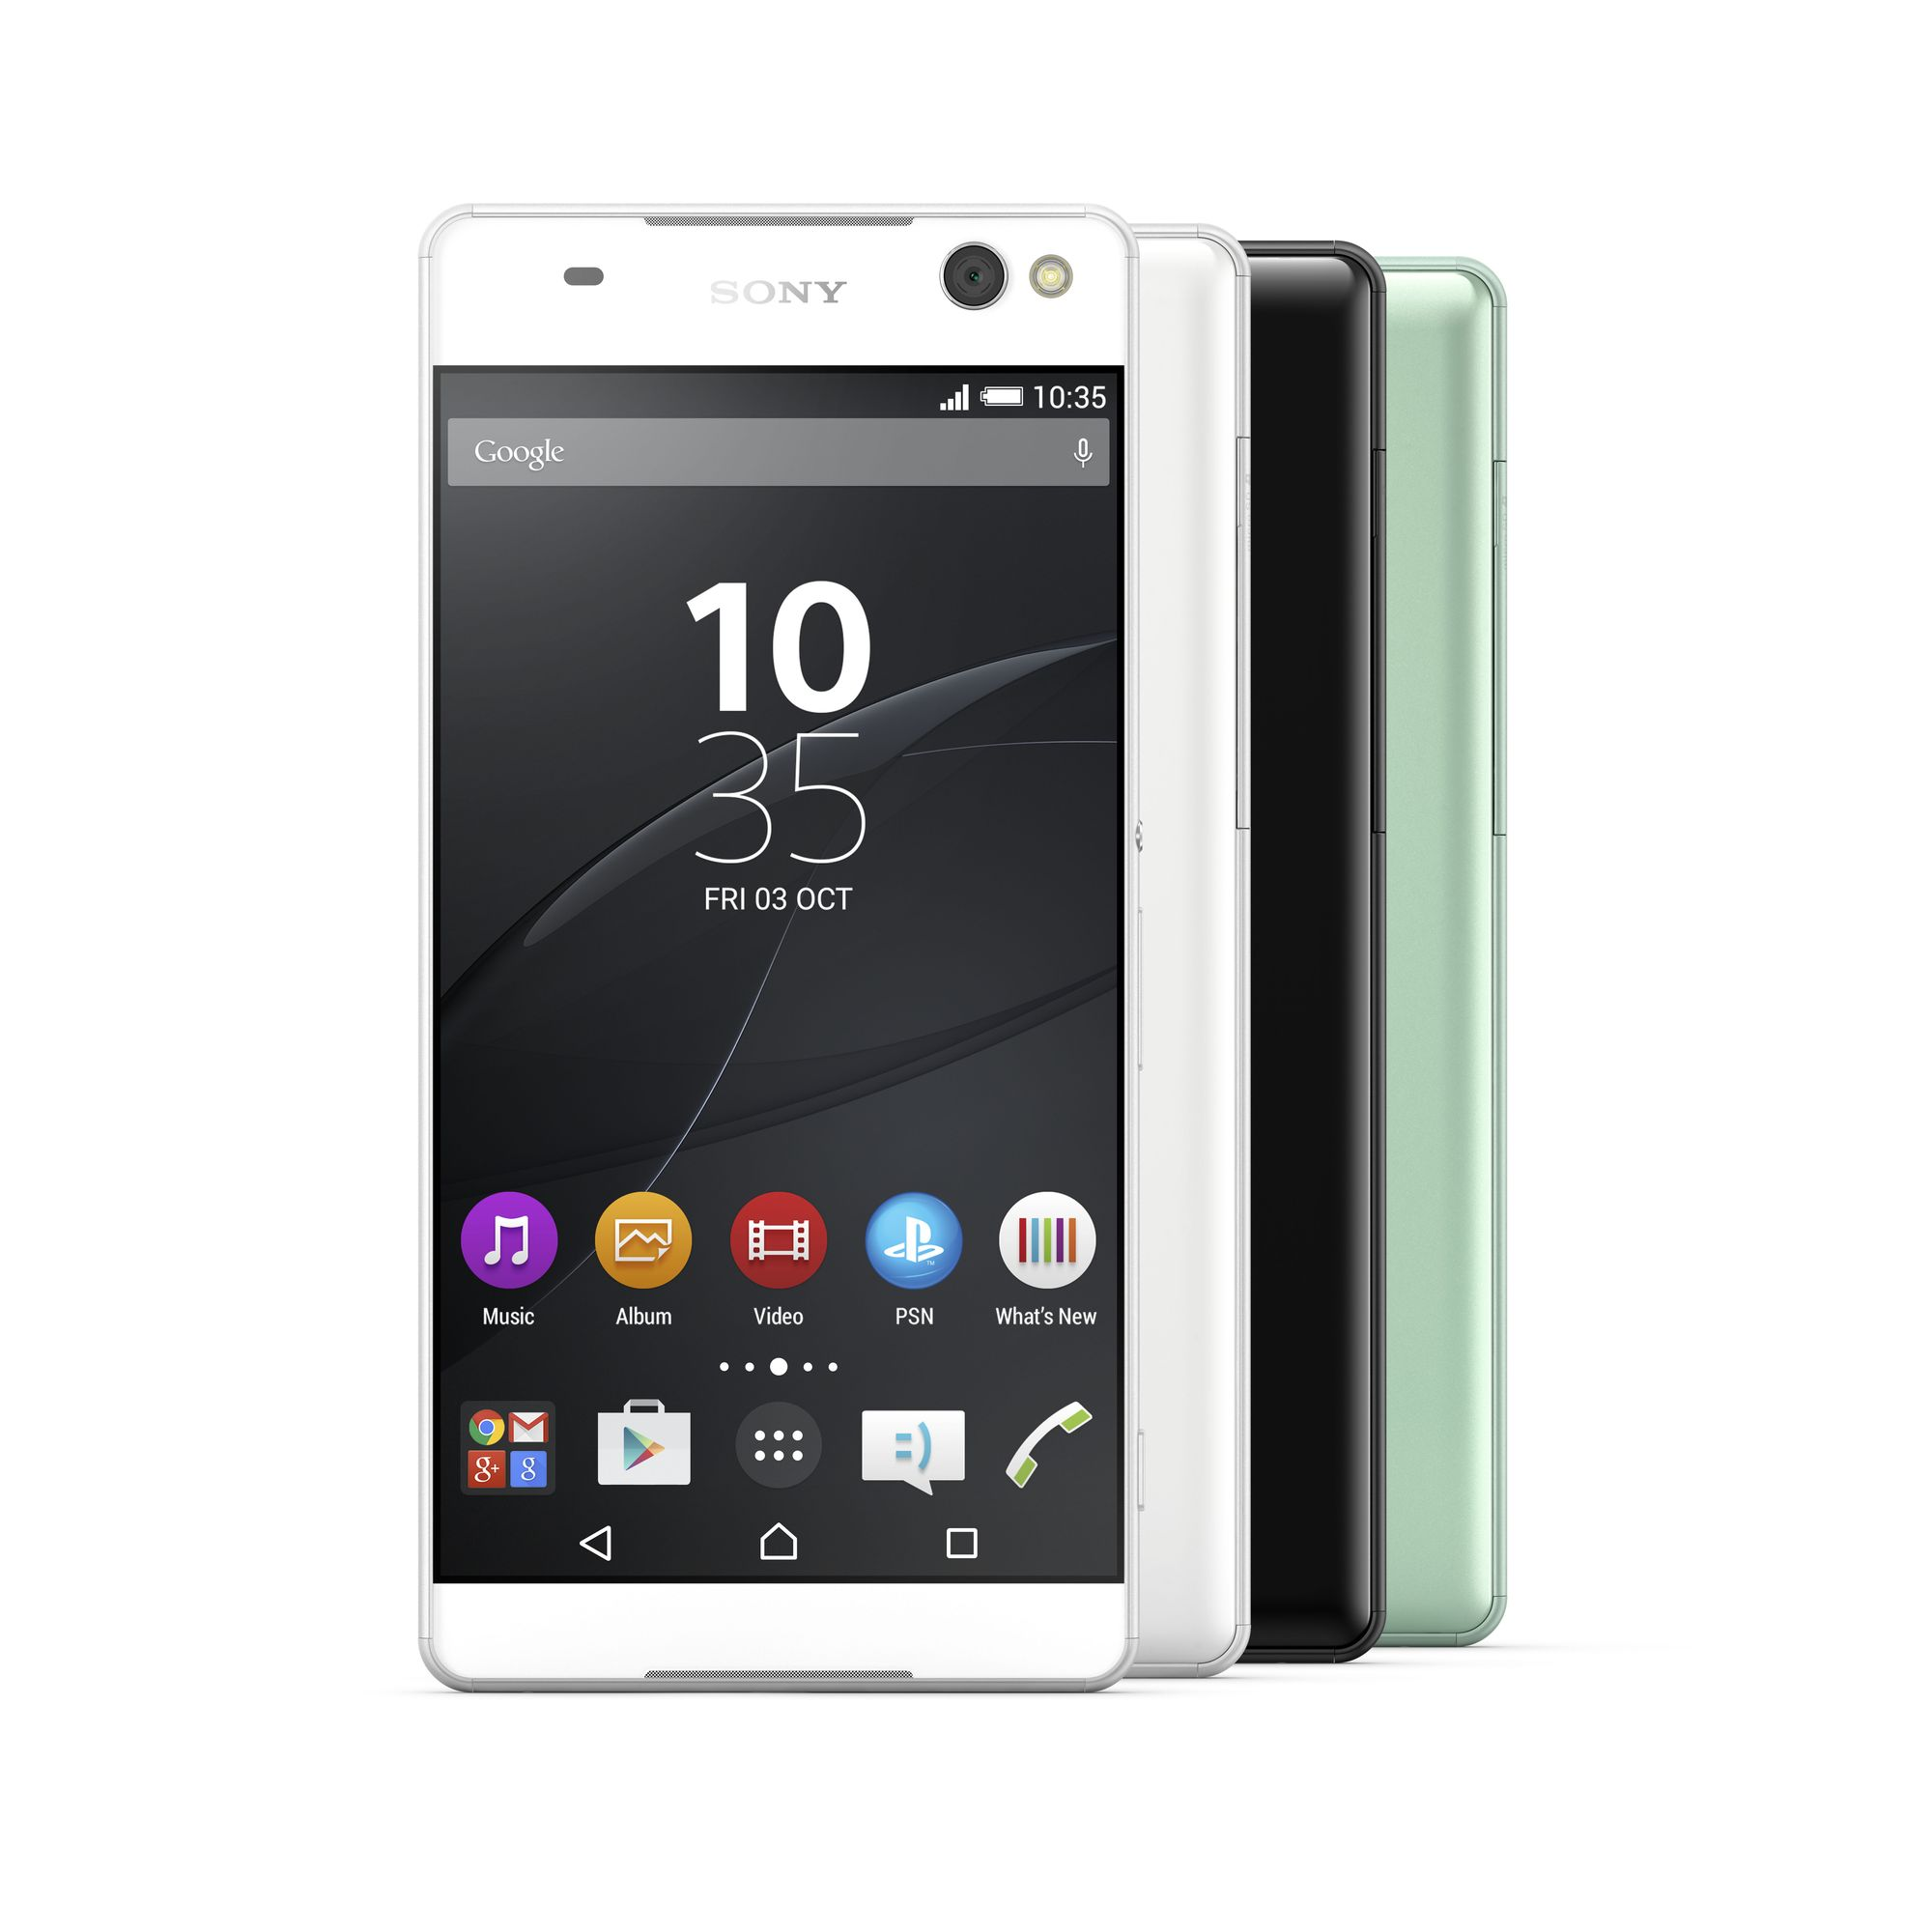 Guide To Flash Sony Xperia M5 Dual Marshmallow 6 0 1 Firmwares E5663 Tested FTF File